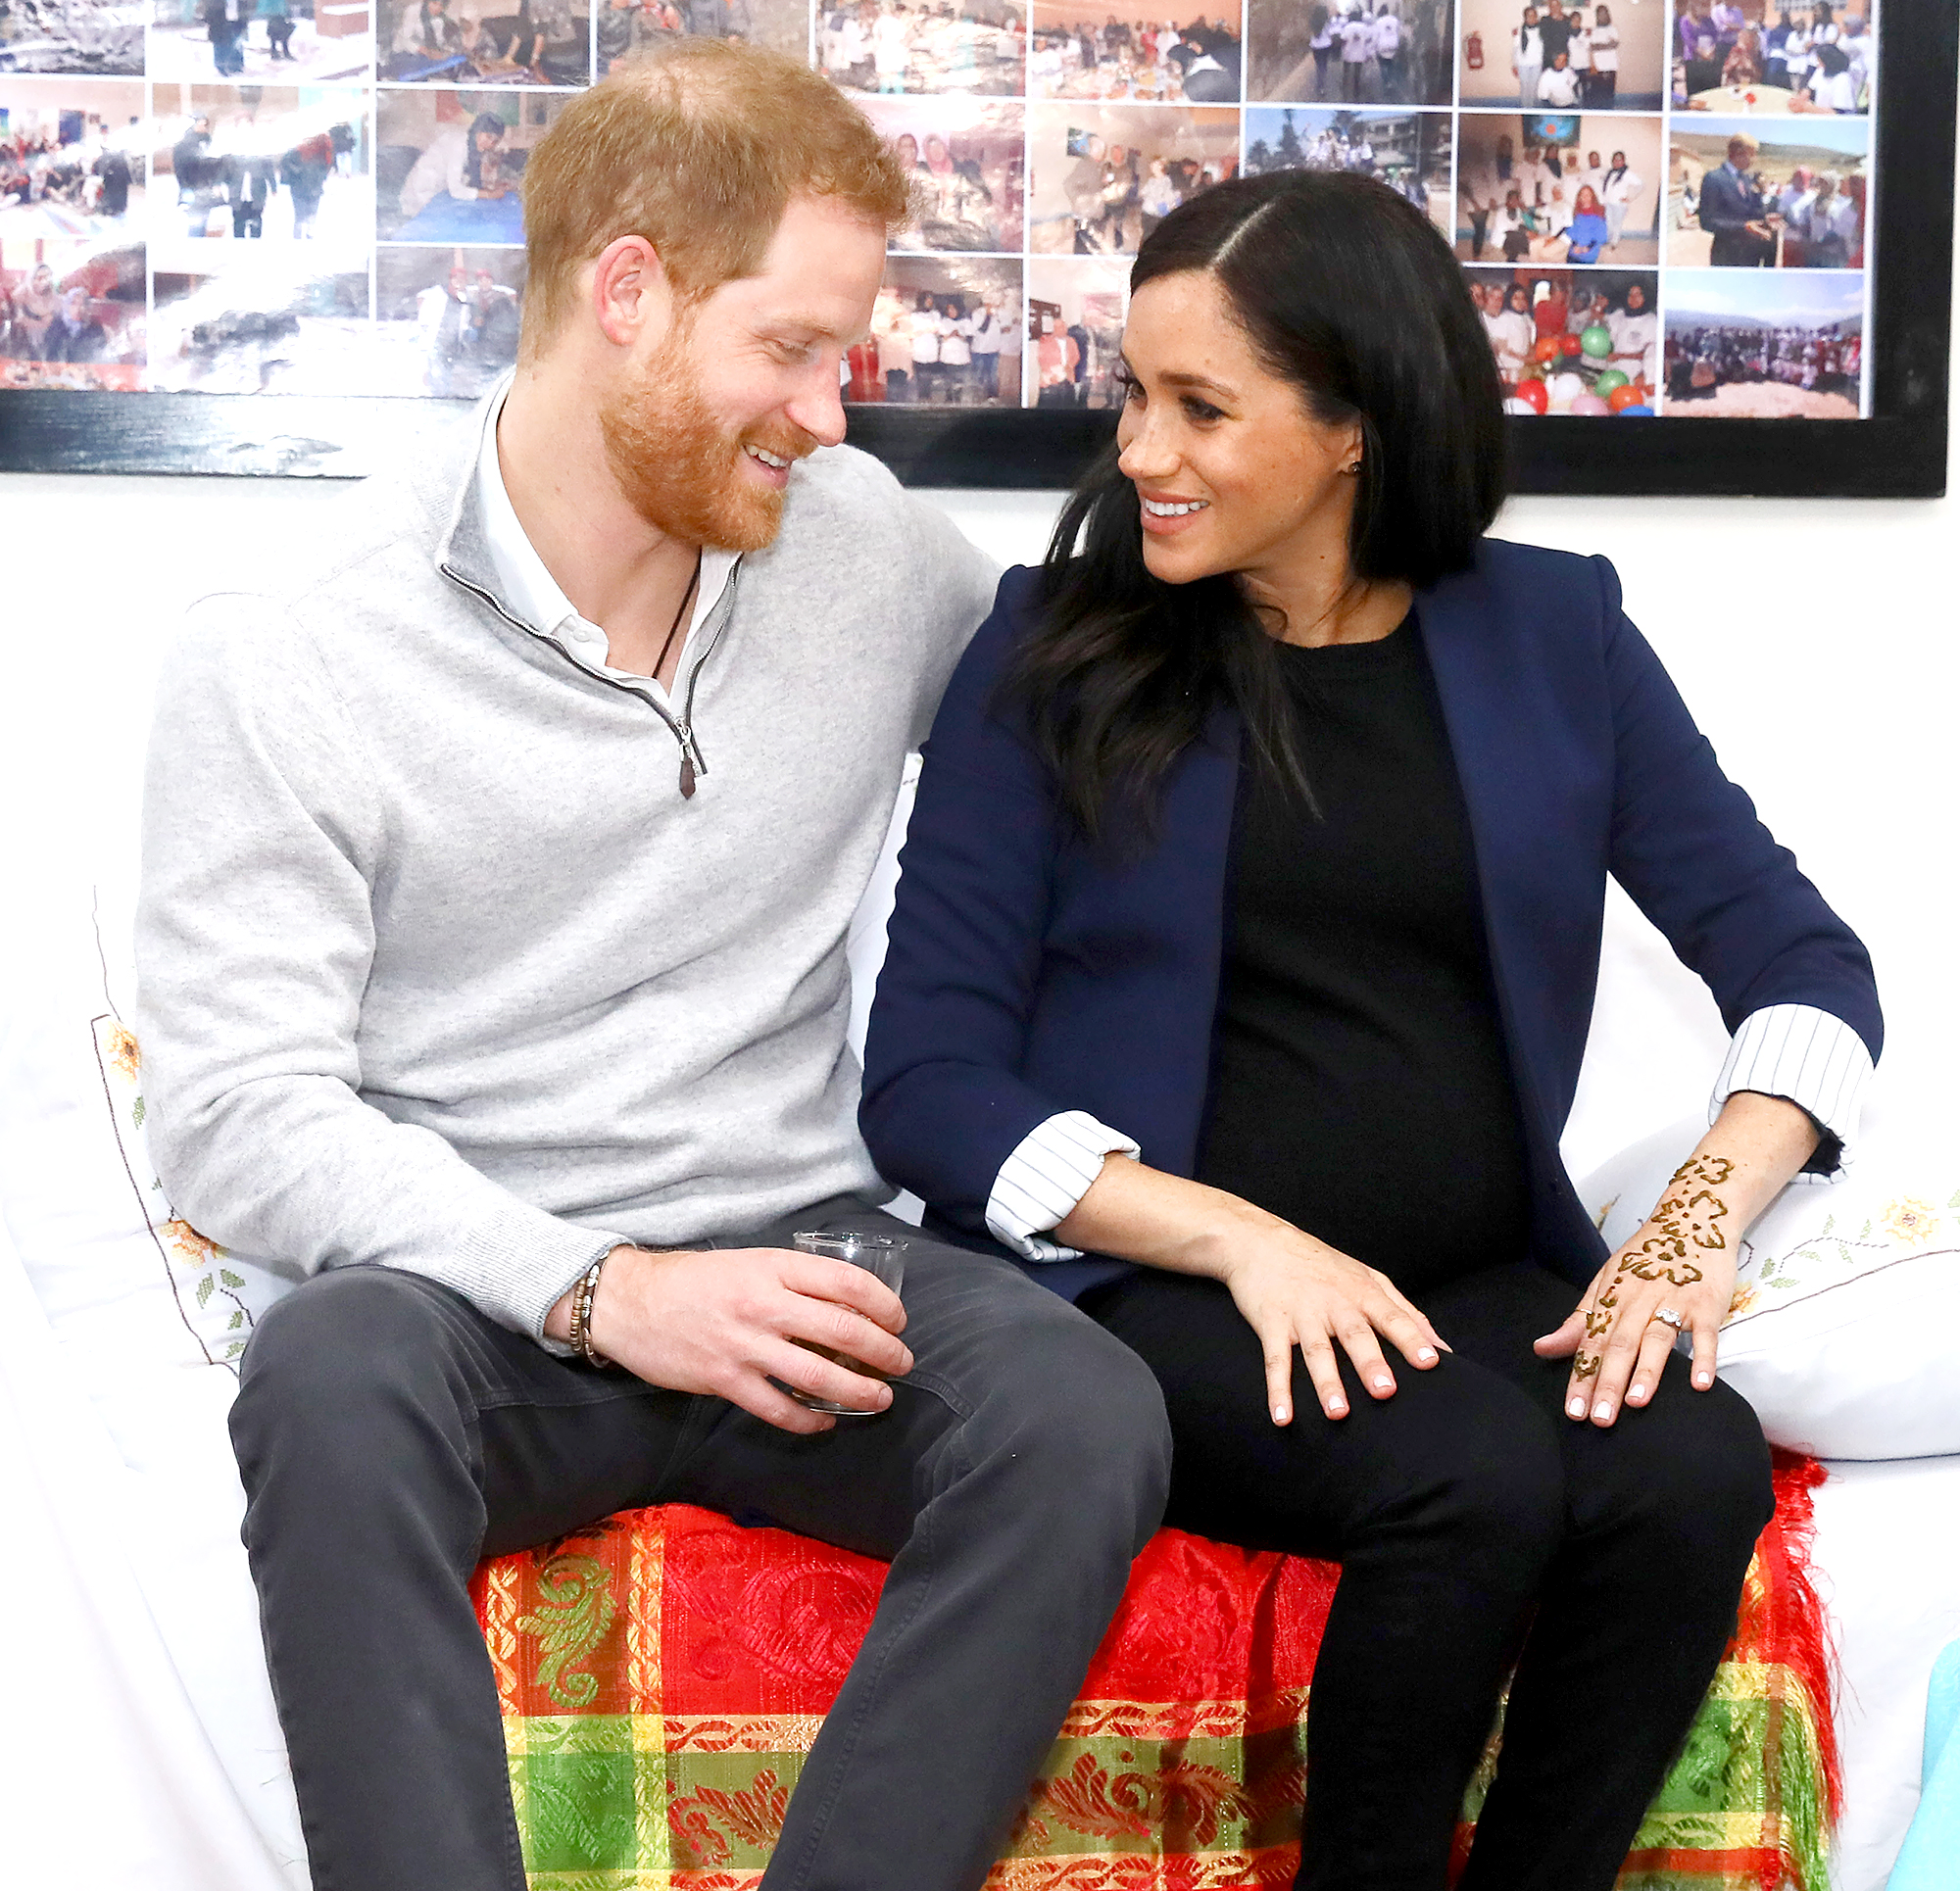 Meghan Markle, Prince Harry Plan To Live 'Quiet Life' With